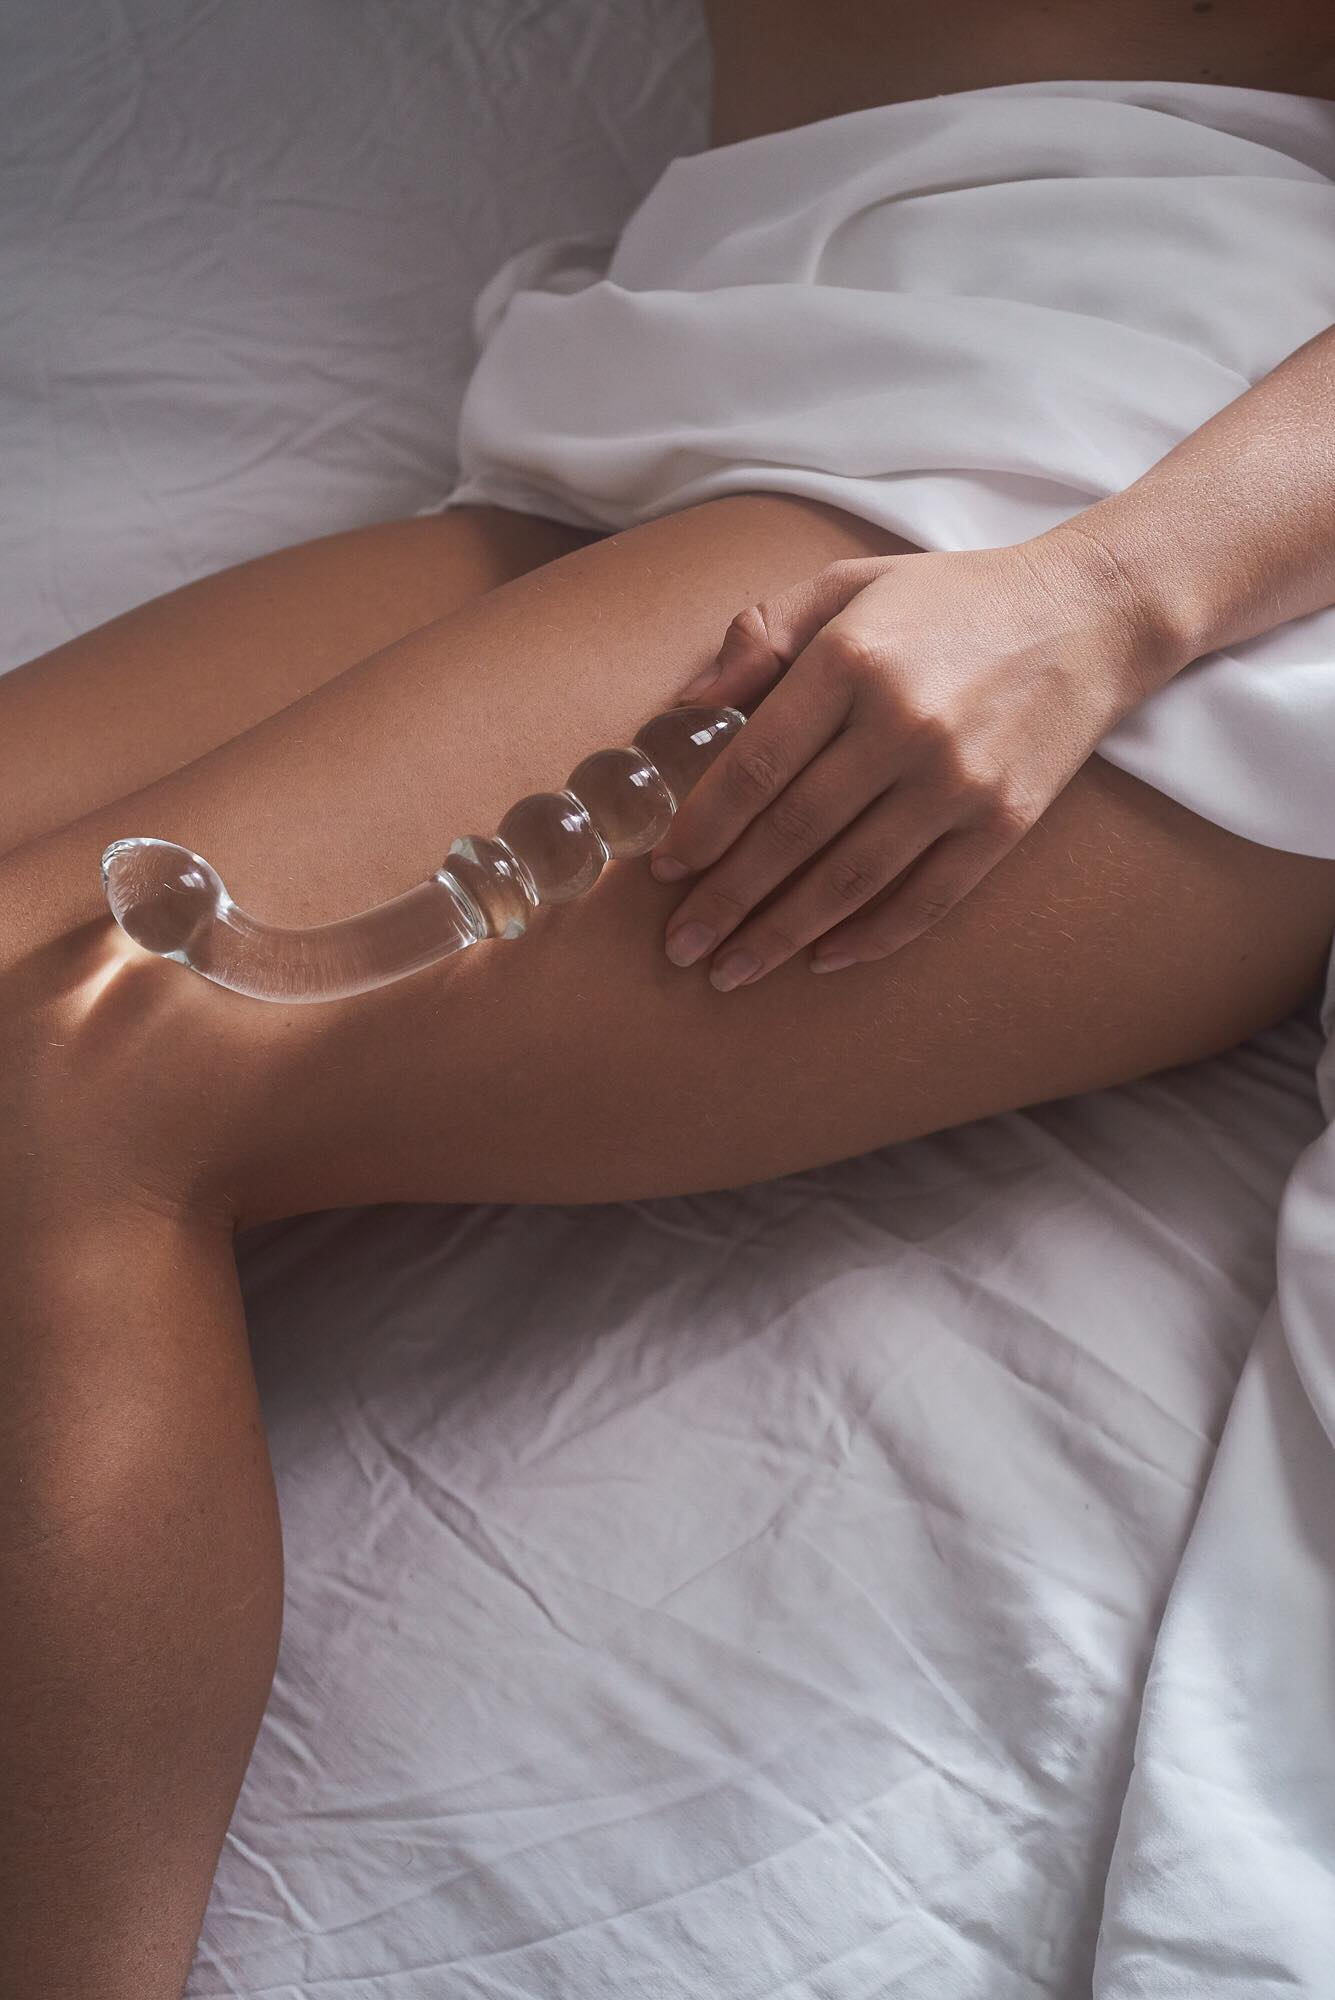 The Medusa   - one hooked end for G-spot activation and beaded end for Anal stimulation. $66